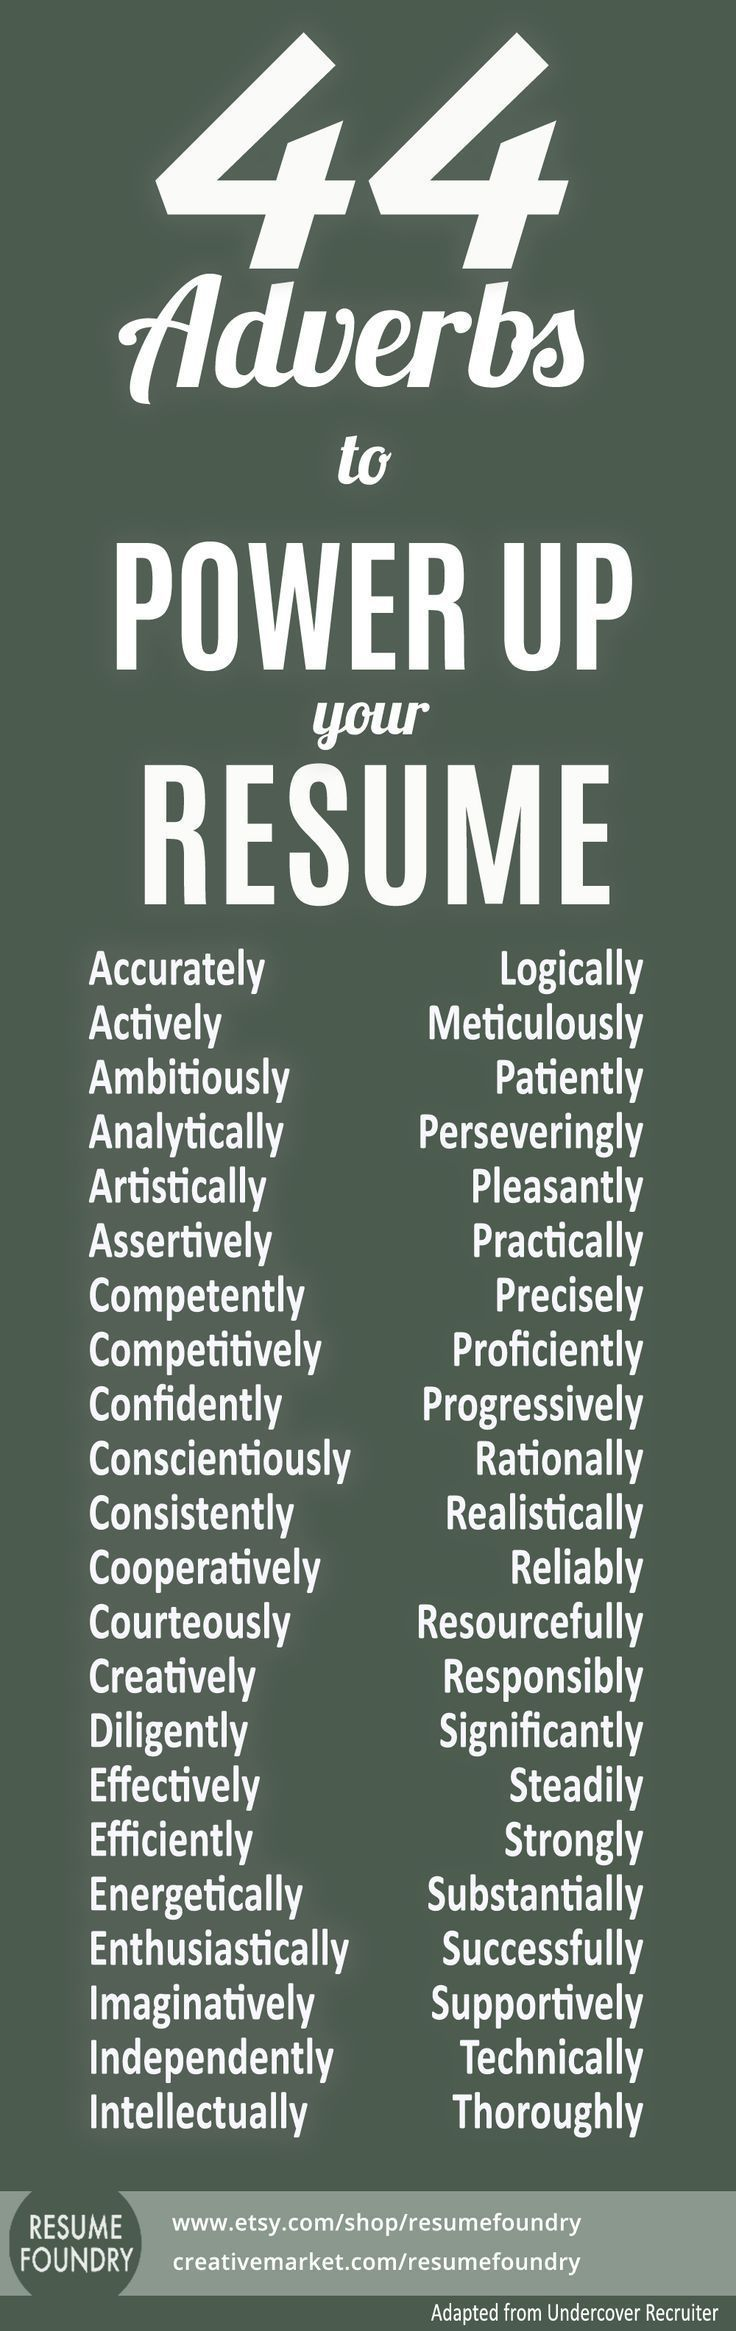 44 adverbs to power up your resume resume tips resume tips